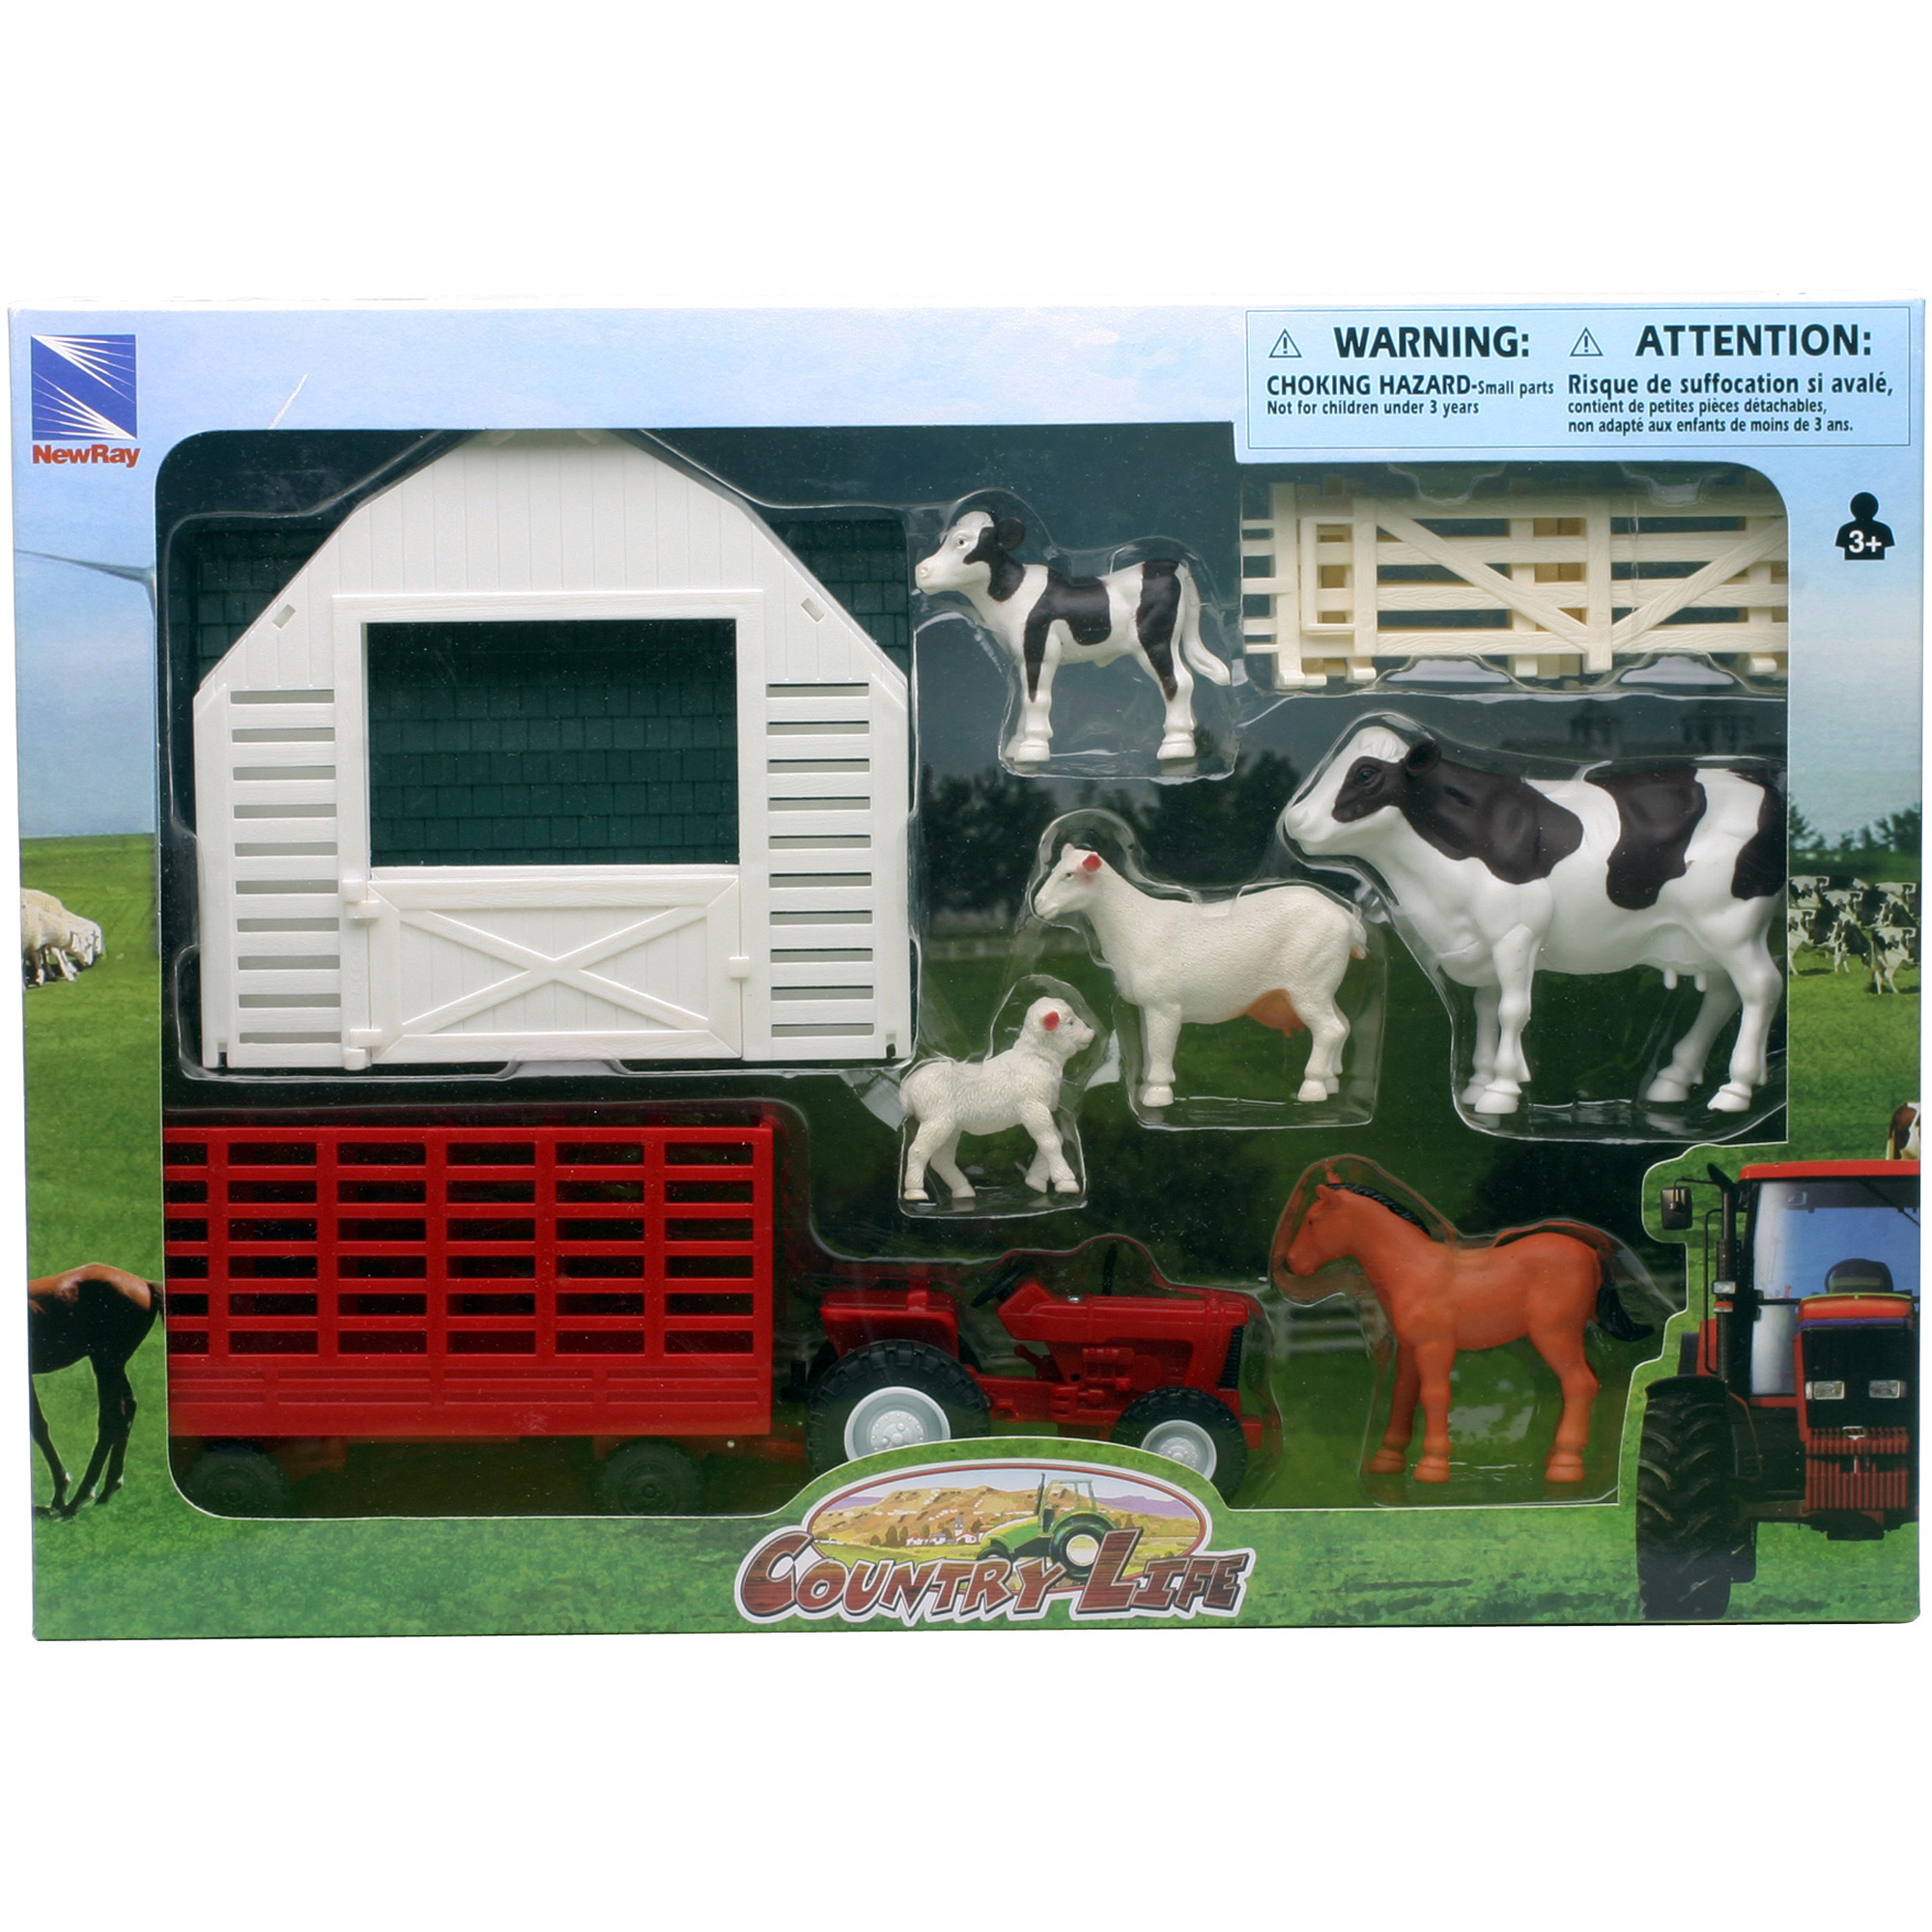 Country Life Farm Animal and Barn Set by New-ray Toys